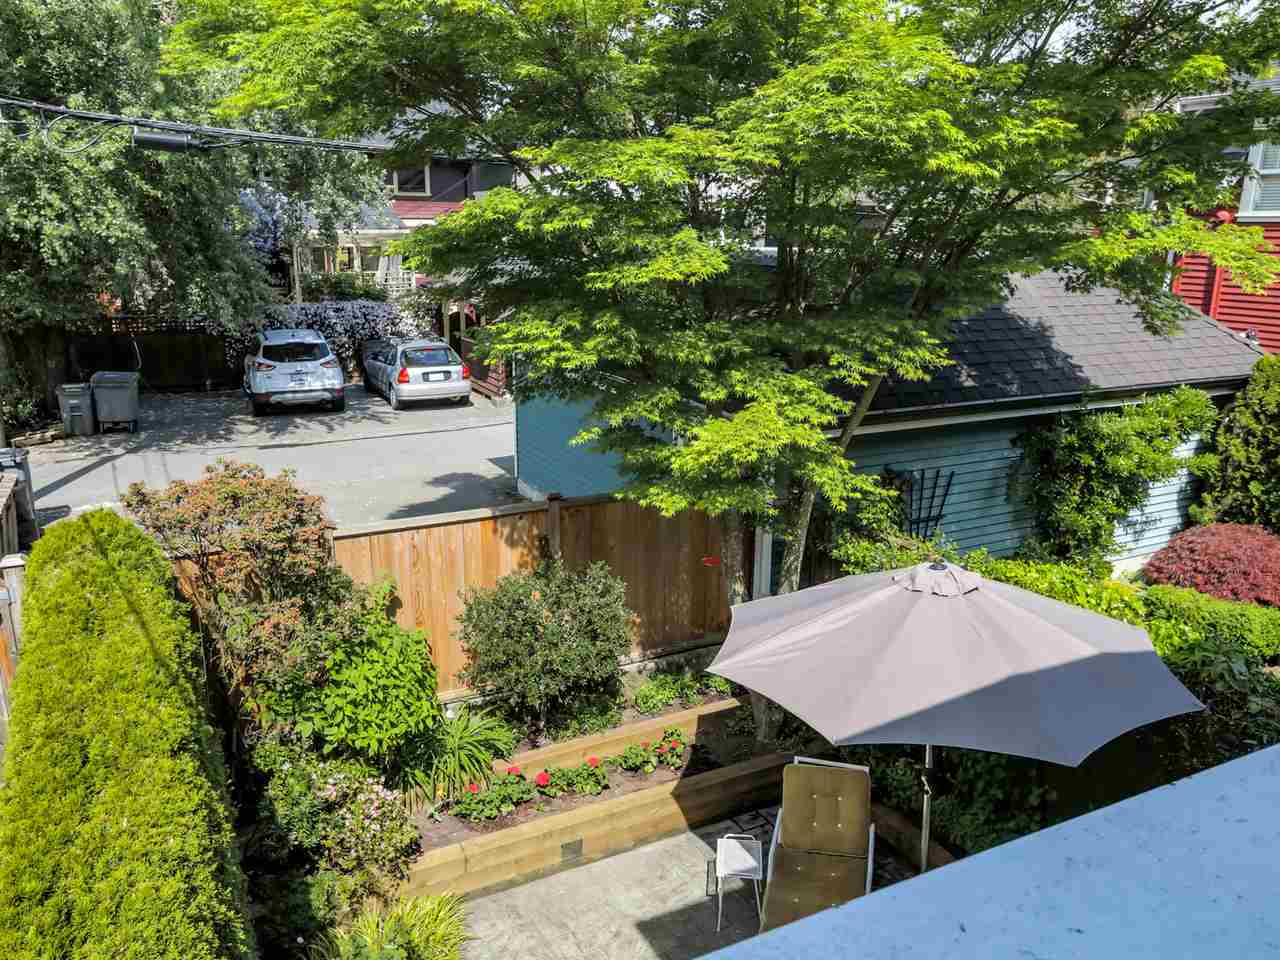 Photo 14: 1825 W 11TH Avenue in Vancouver: Kitsilano Townhouse for sale (Vancouver West)  : MLS® # R2061107